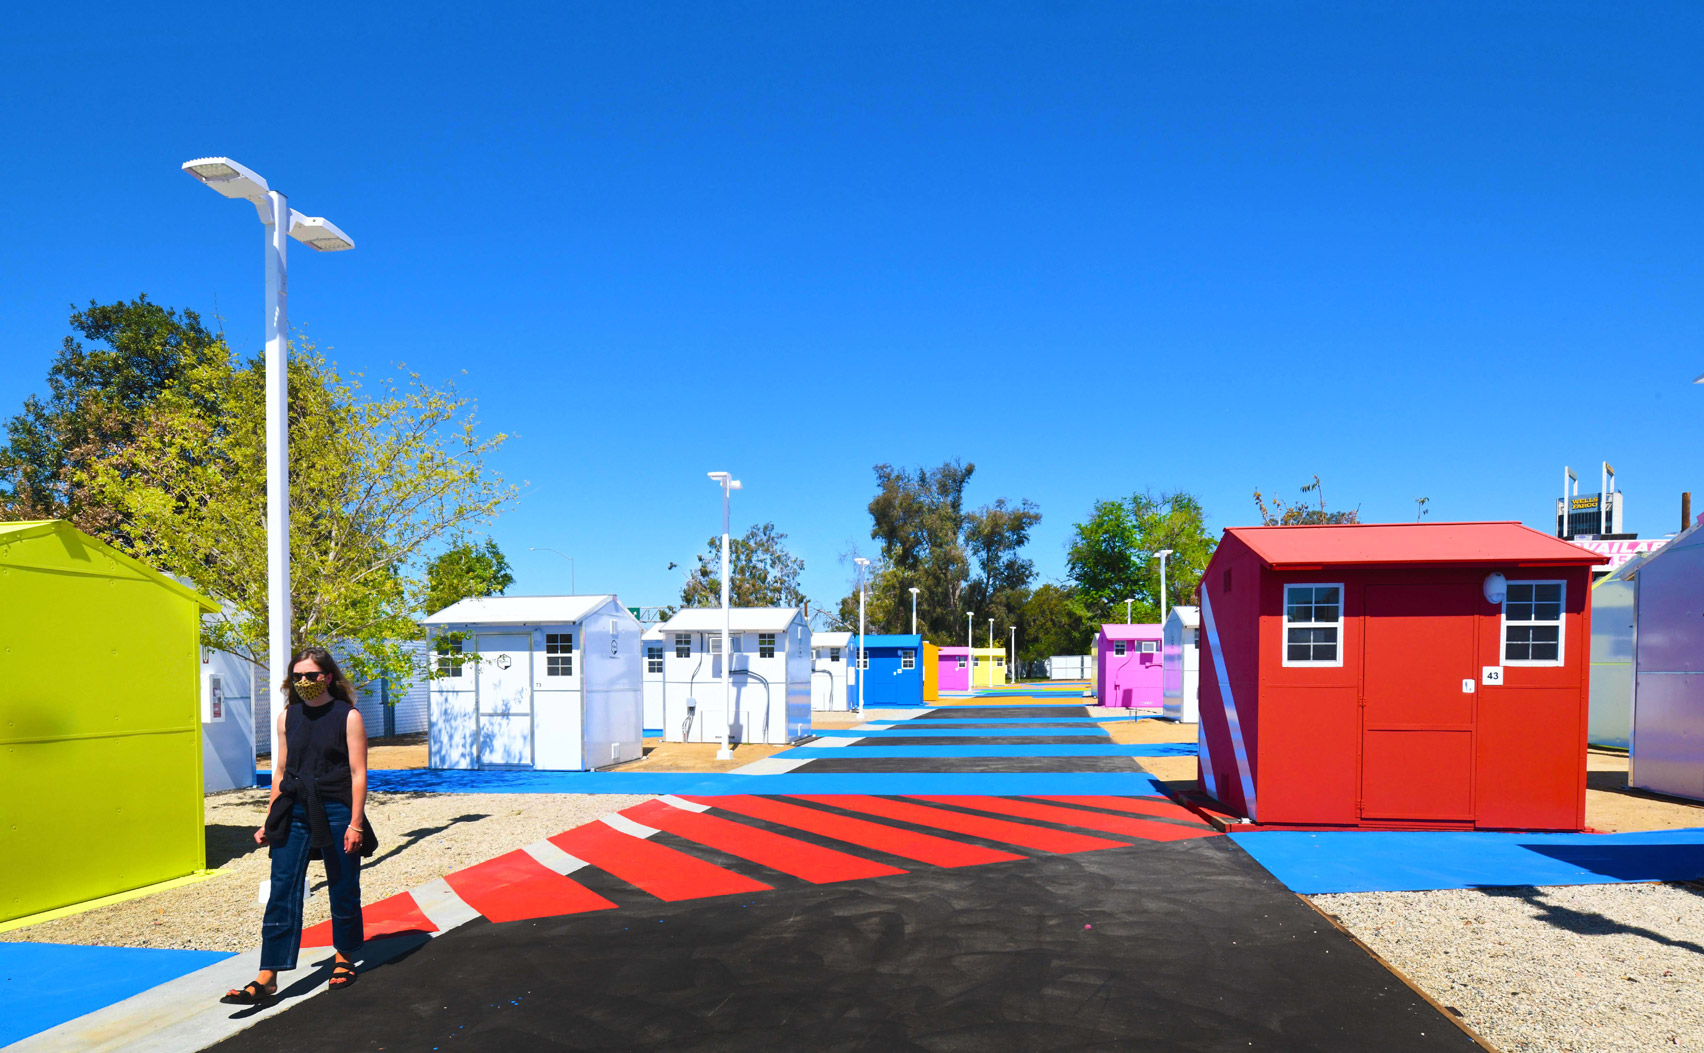 Colourful homeless shelters by Pallet in LA